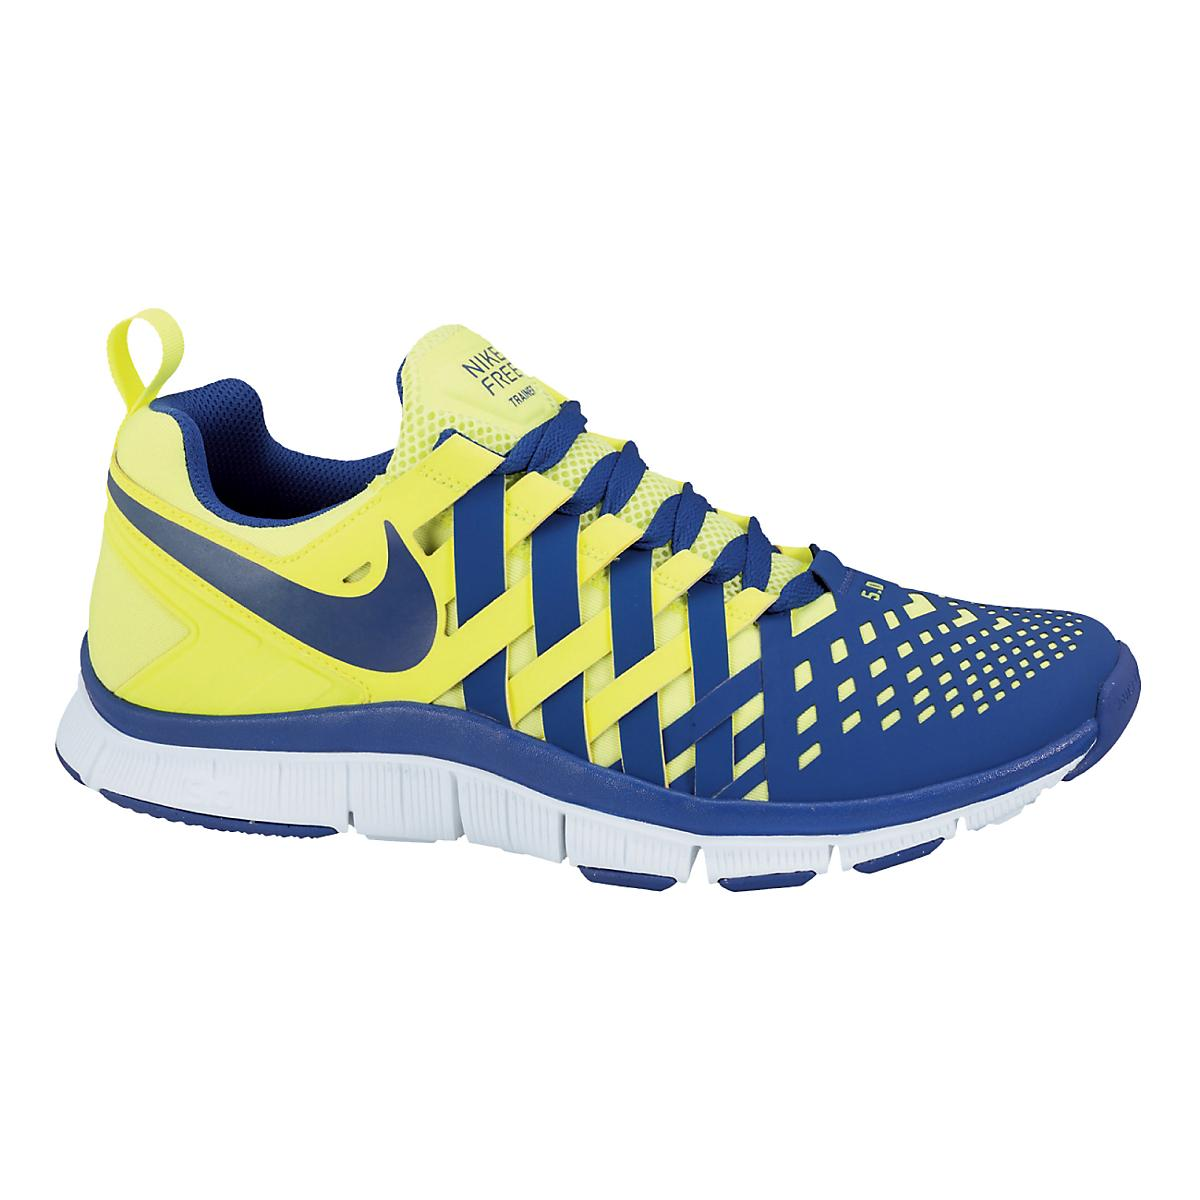 san francisco 1b79e 8e988 Mens Nike Free Trainer 5.0 Cross Training Shoe at Road Runner Sports